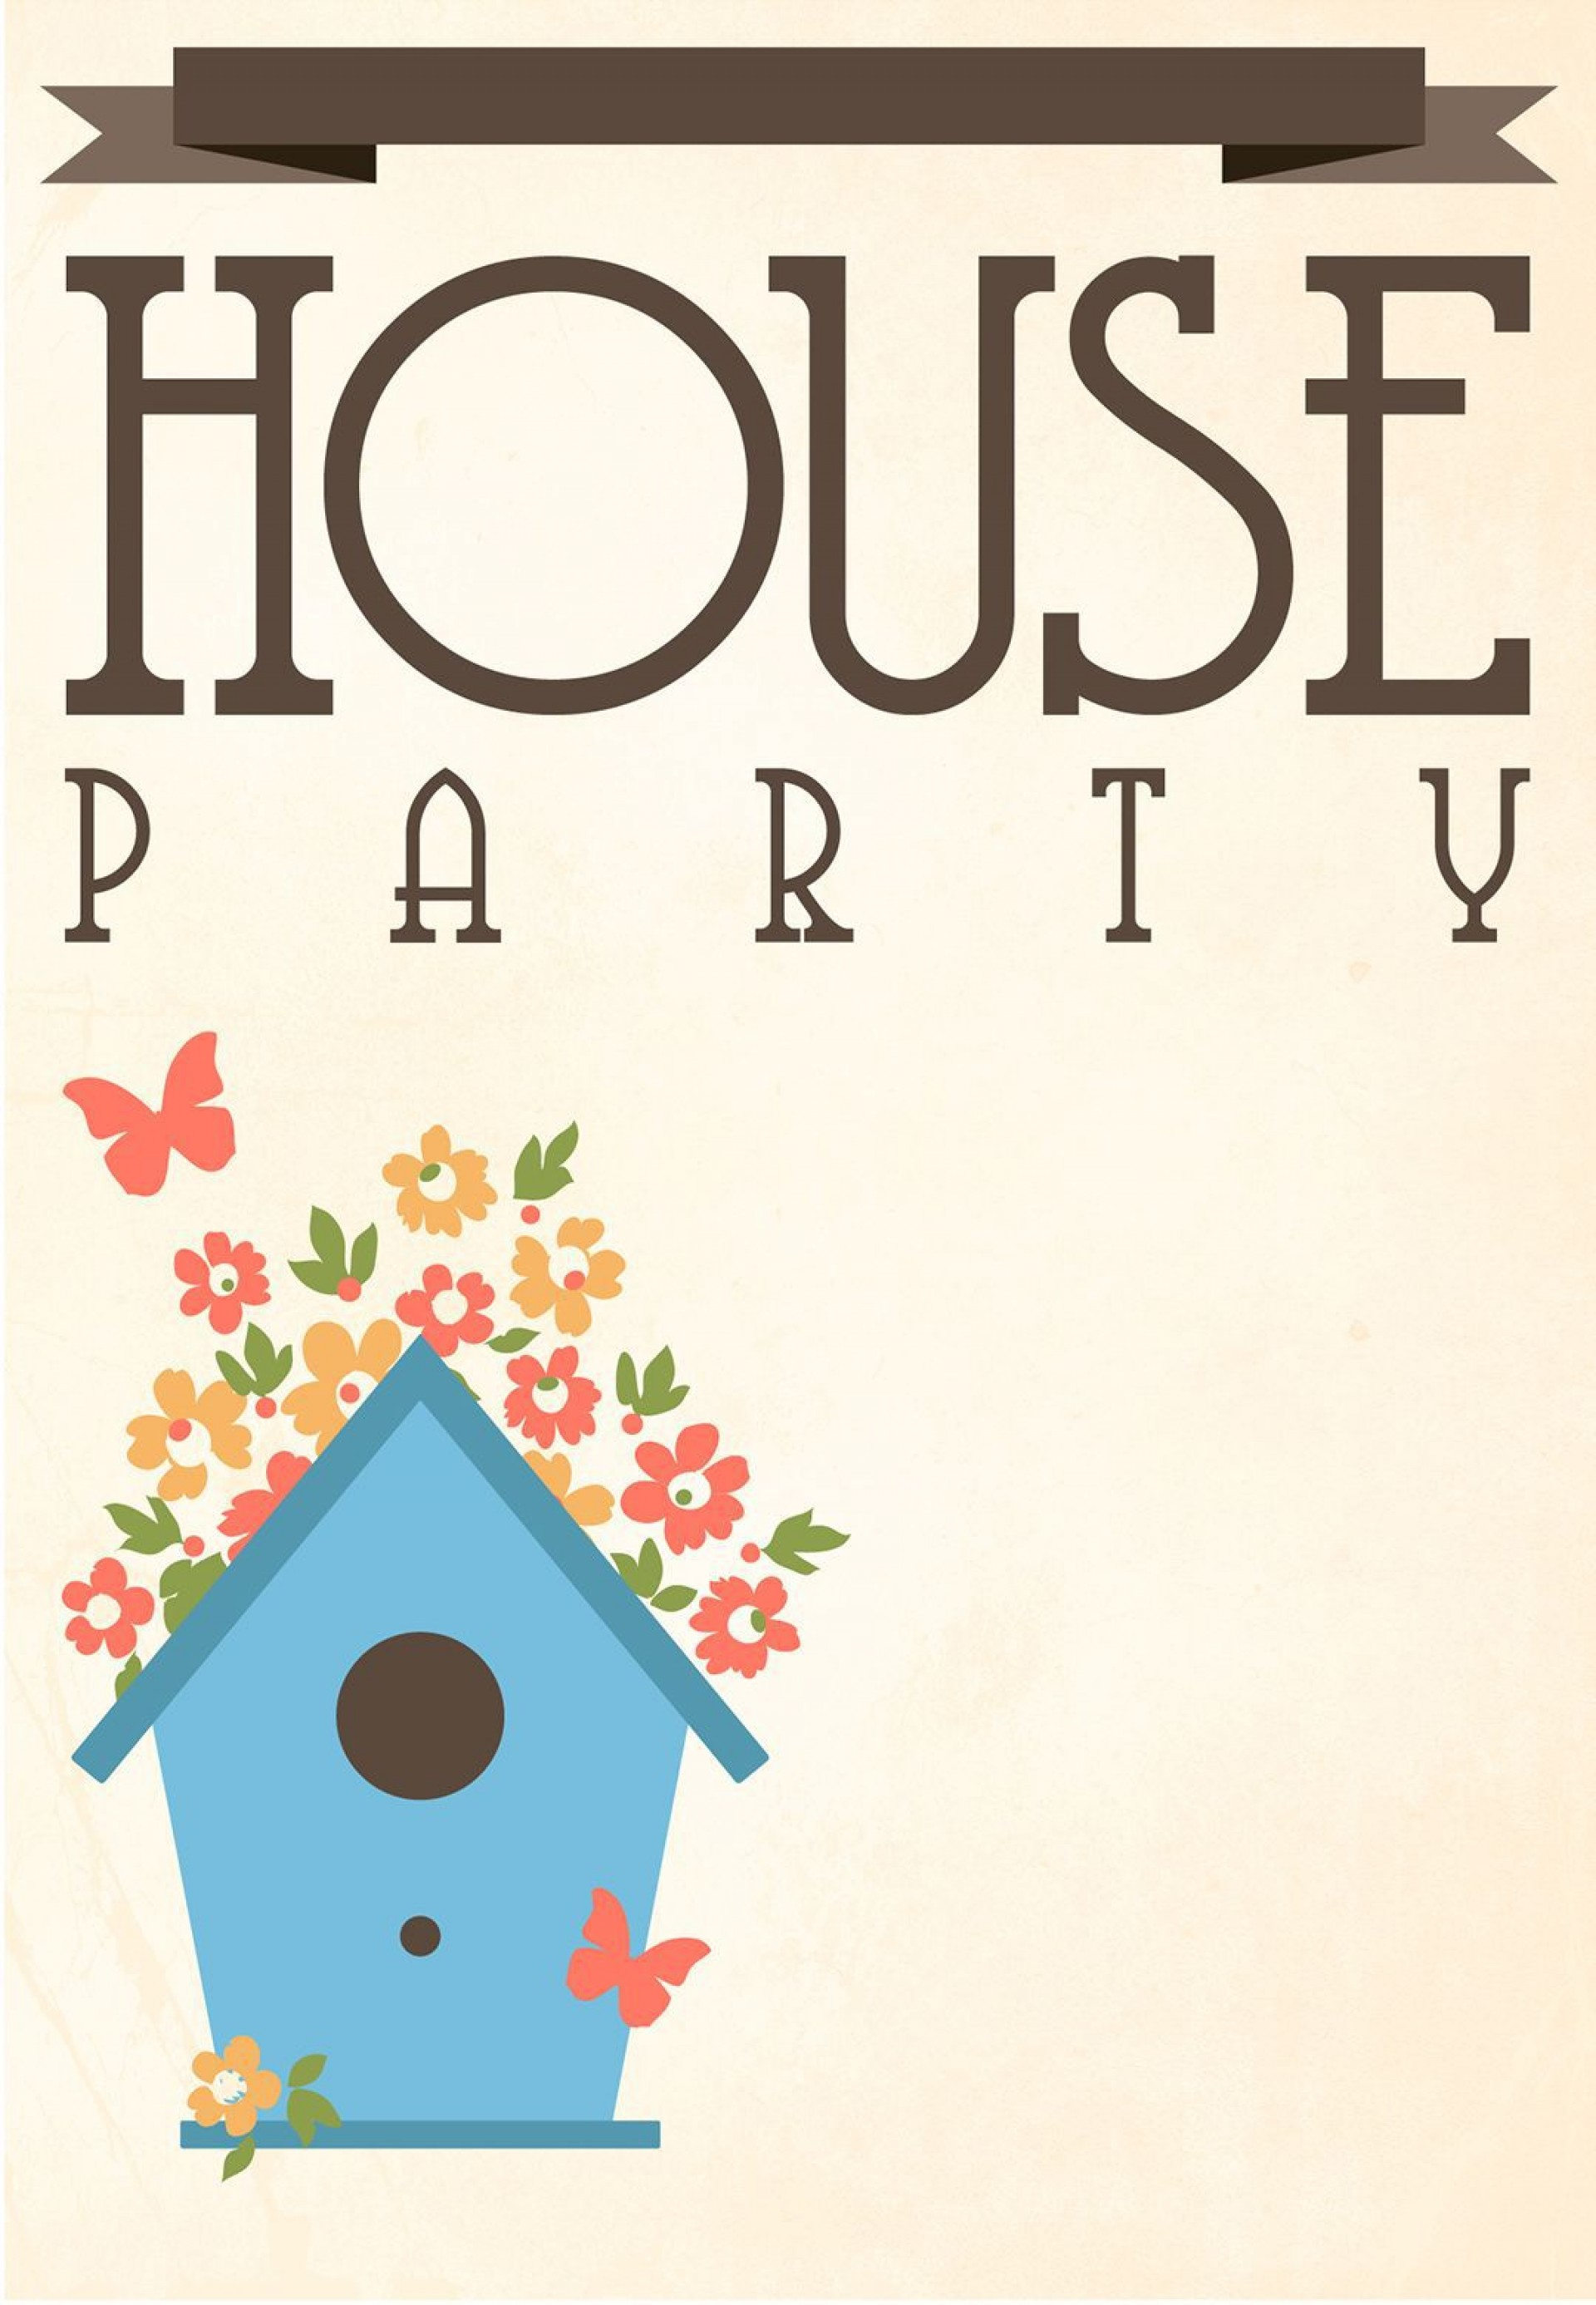 004 Impressive Housewarming Party Invitation Template Photo  Templates Free Download Card1920